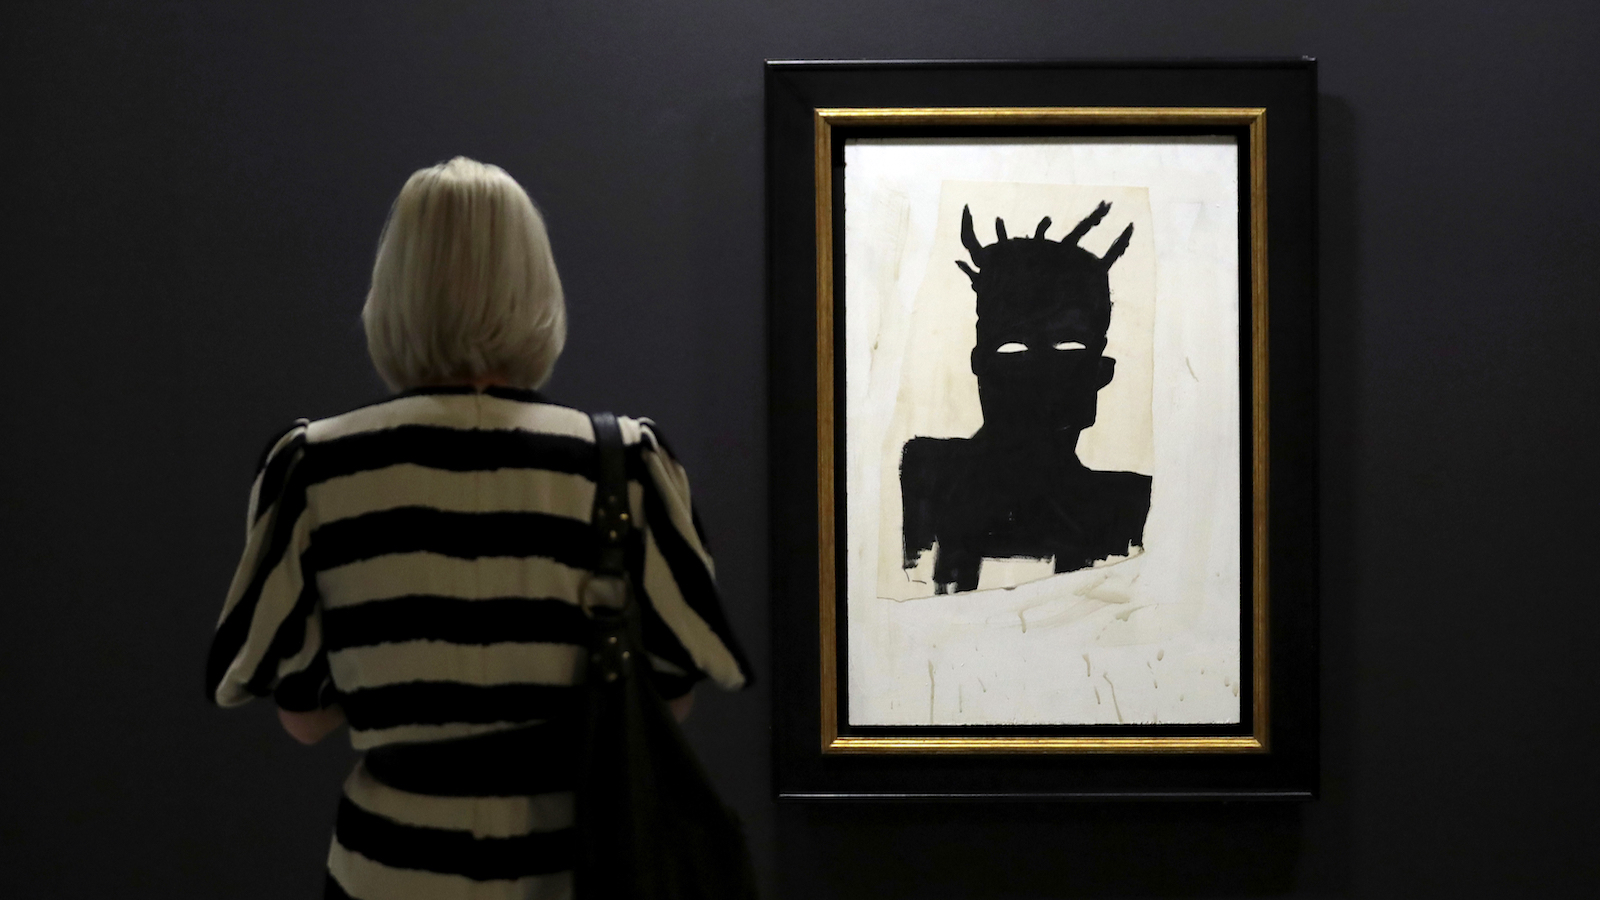 """The oil on paper and wood """"Self Portrait 1983"""" is displayed at the media view for """"Basquiat: Boom for Real"""", the first large-scale exhibition in the UK of the work of American artist Jean-Michel Basquiat at the Barbican Art Gallery in London, Wednesday, Sept. 20, 2017. Over 100 works are displayed in the exhibition from the artist who came of age in the late 1970s underground art and graffiti scene in New York and died aged 27 in 1988. (AP Photo/Matt Dunham)"""